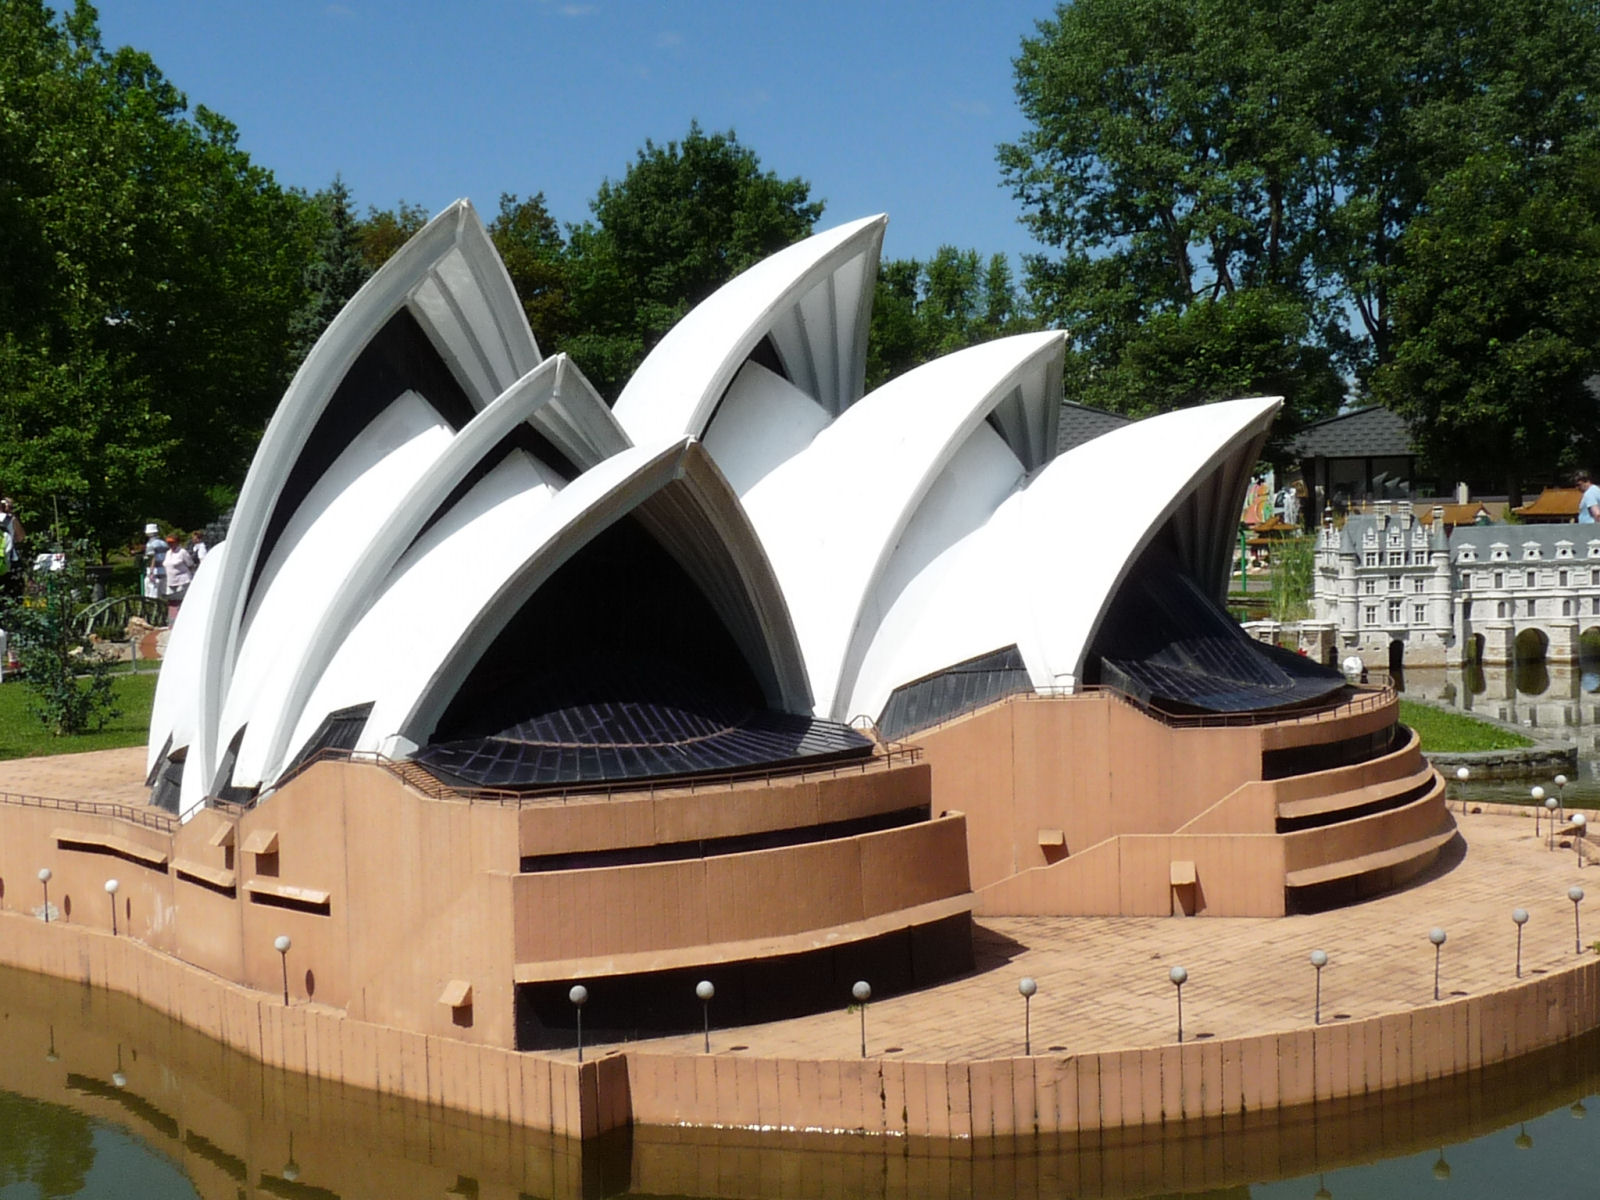 Model of the Sydney Opera House at Minimundus, Klagenfurt, Austria